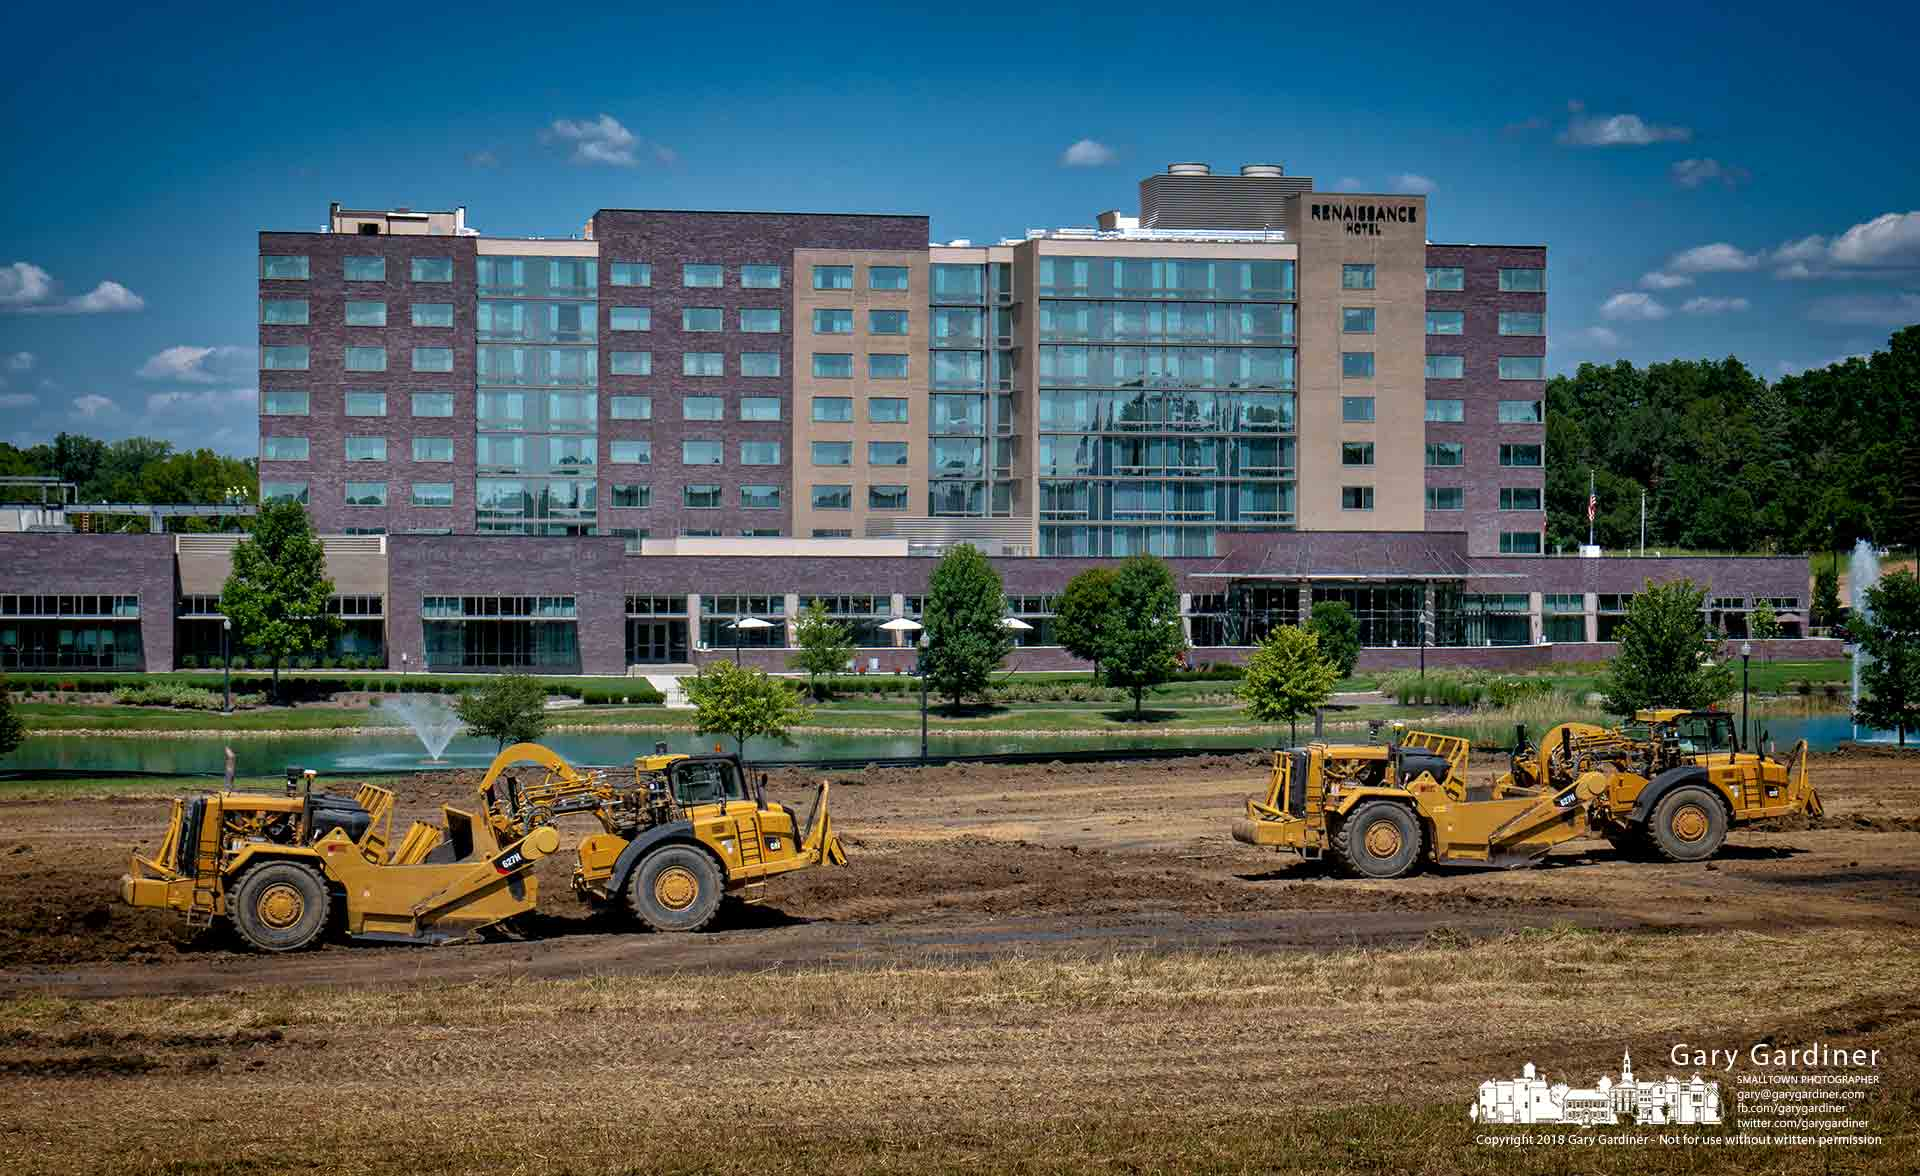 A pair of earthmovers transfer topsoil to a storage area and fill dirt onto the grounds where DHL is building its new North and South America headquarters in Westerville near the new Renaissance Hotel. My Final Photo for Aug. 23, 2018.